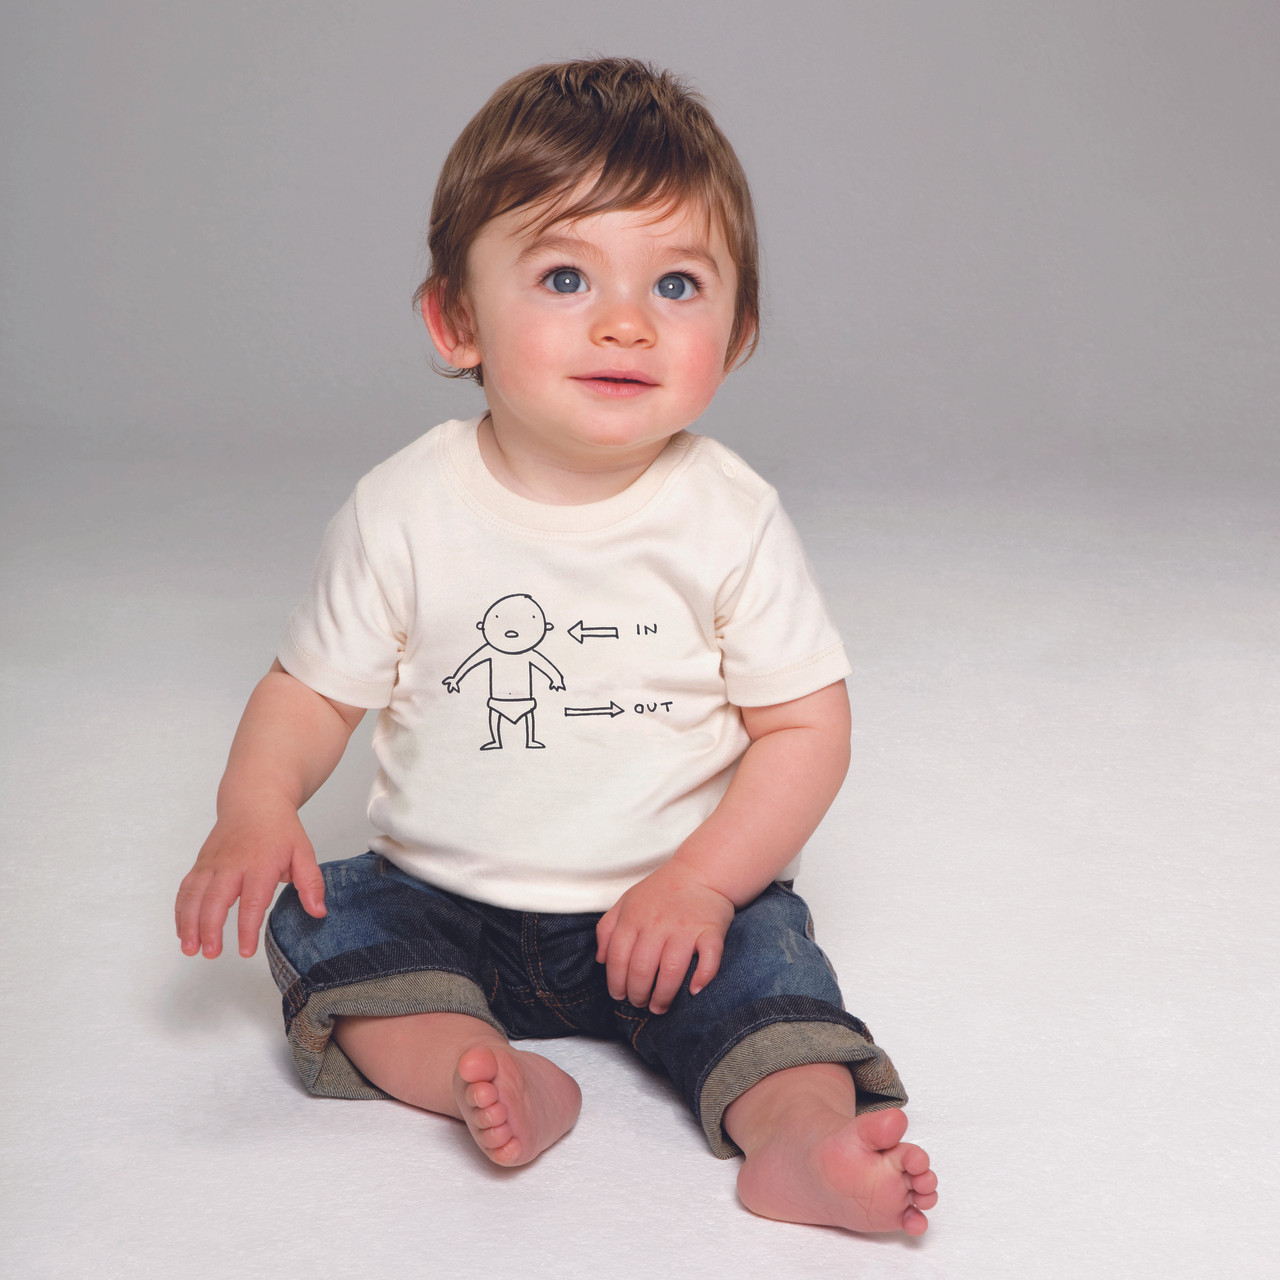 037f23cd1 'In/Out' Fair Trade Baby Tshirt. Your Price: £8.00 (You save £4.50). Image 1